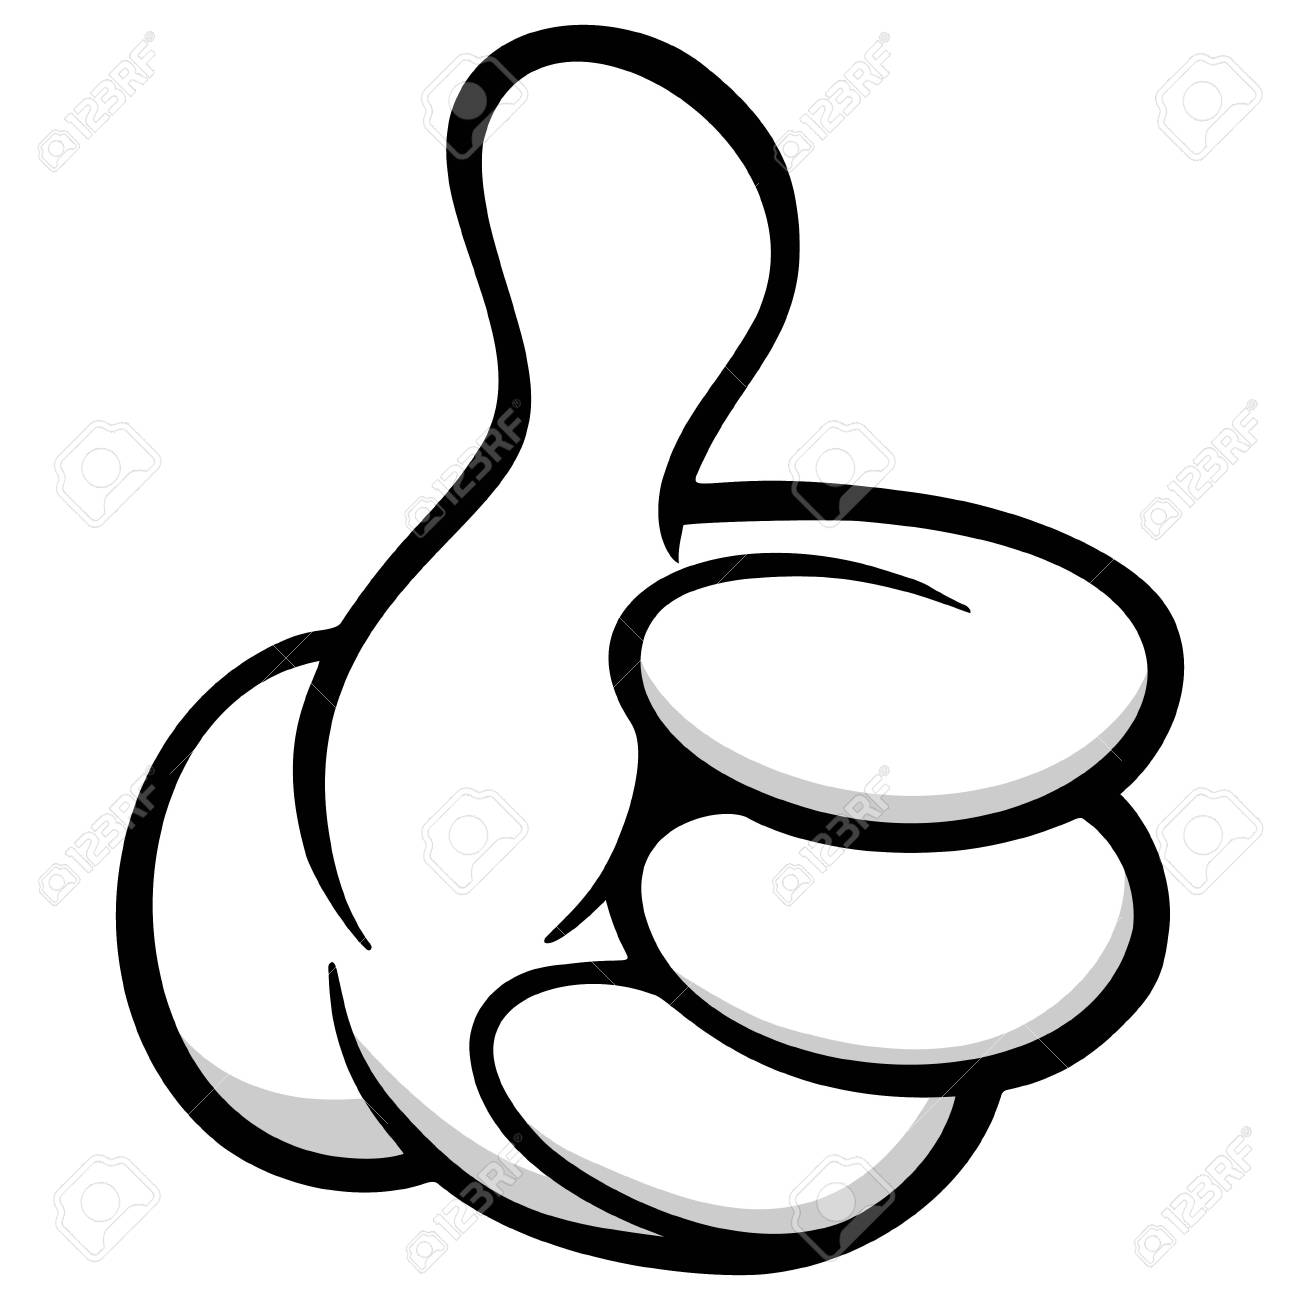 Thumbs Up Cartoon Hand.